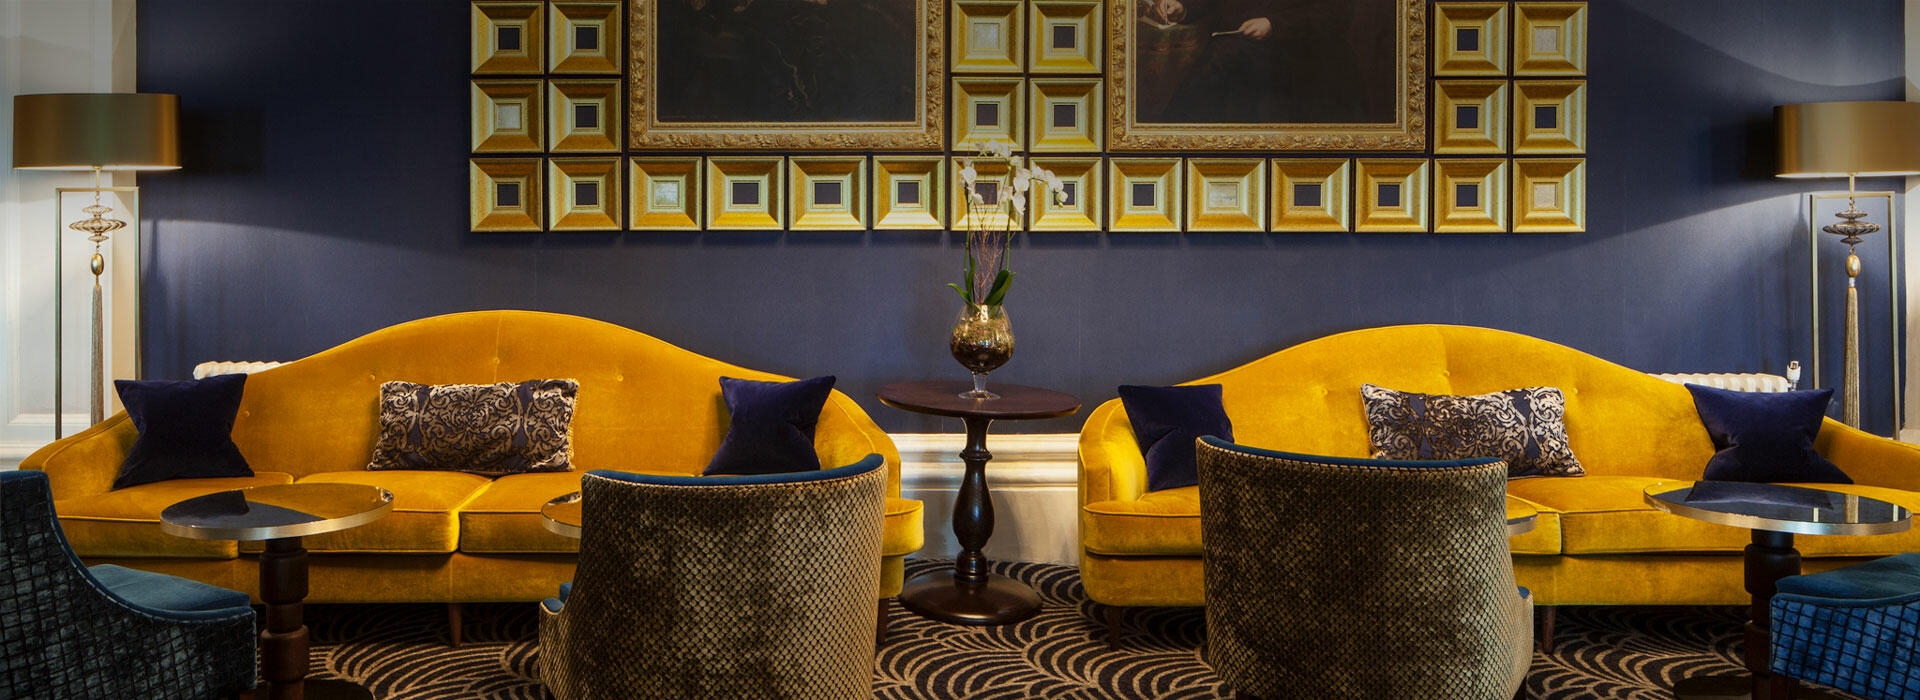 Lounge at The Grand Brighton in East Sussex, United Kingdom